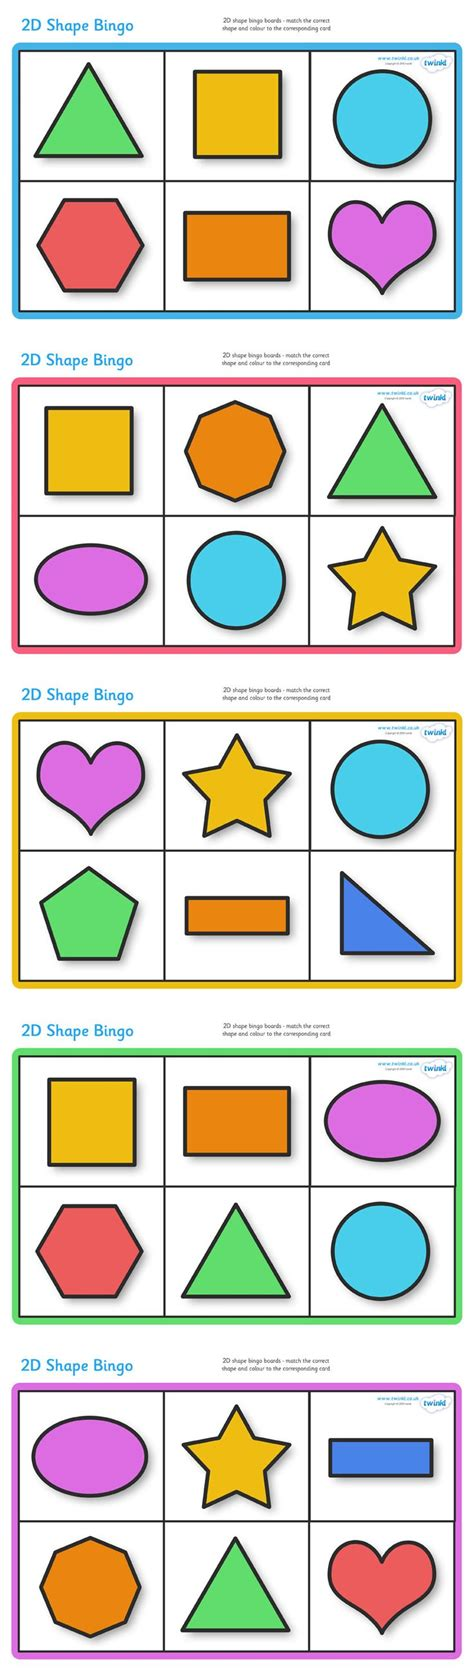 printable game board shapes pin by kathy kroenung on toddler activities for home